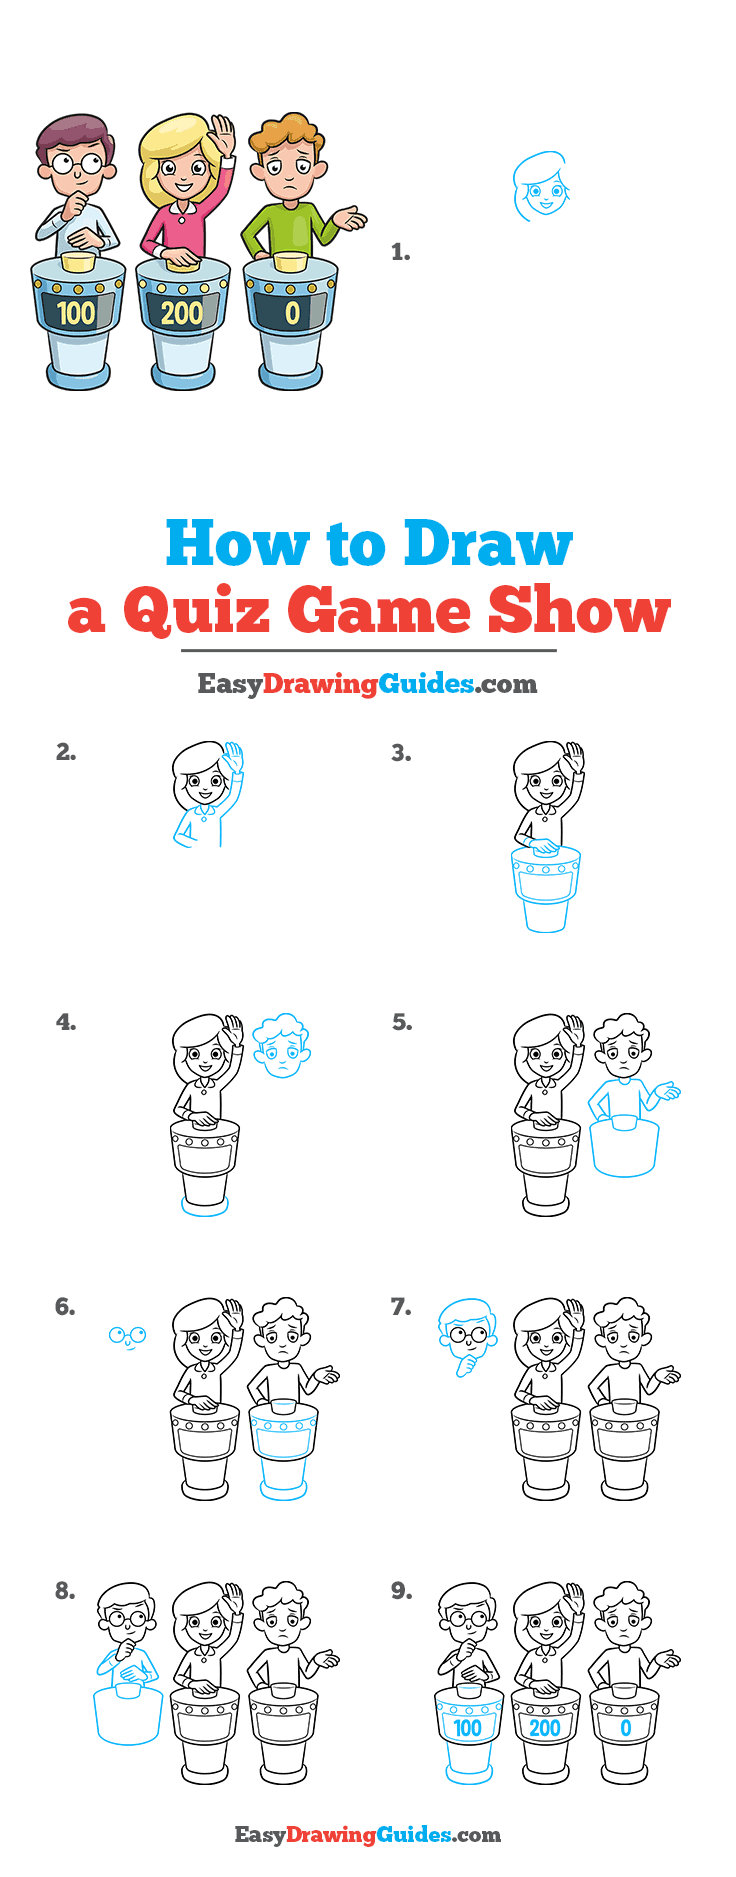 How to Draw Quiz Game Show